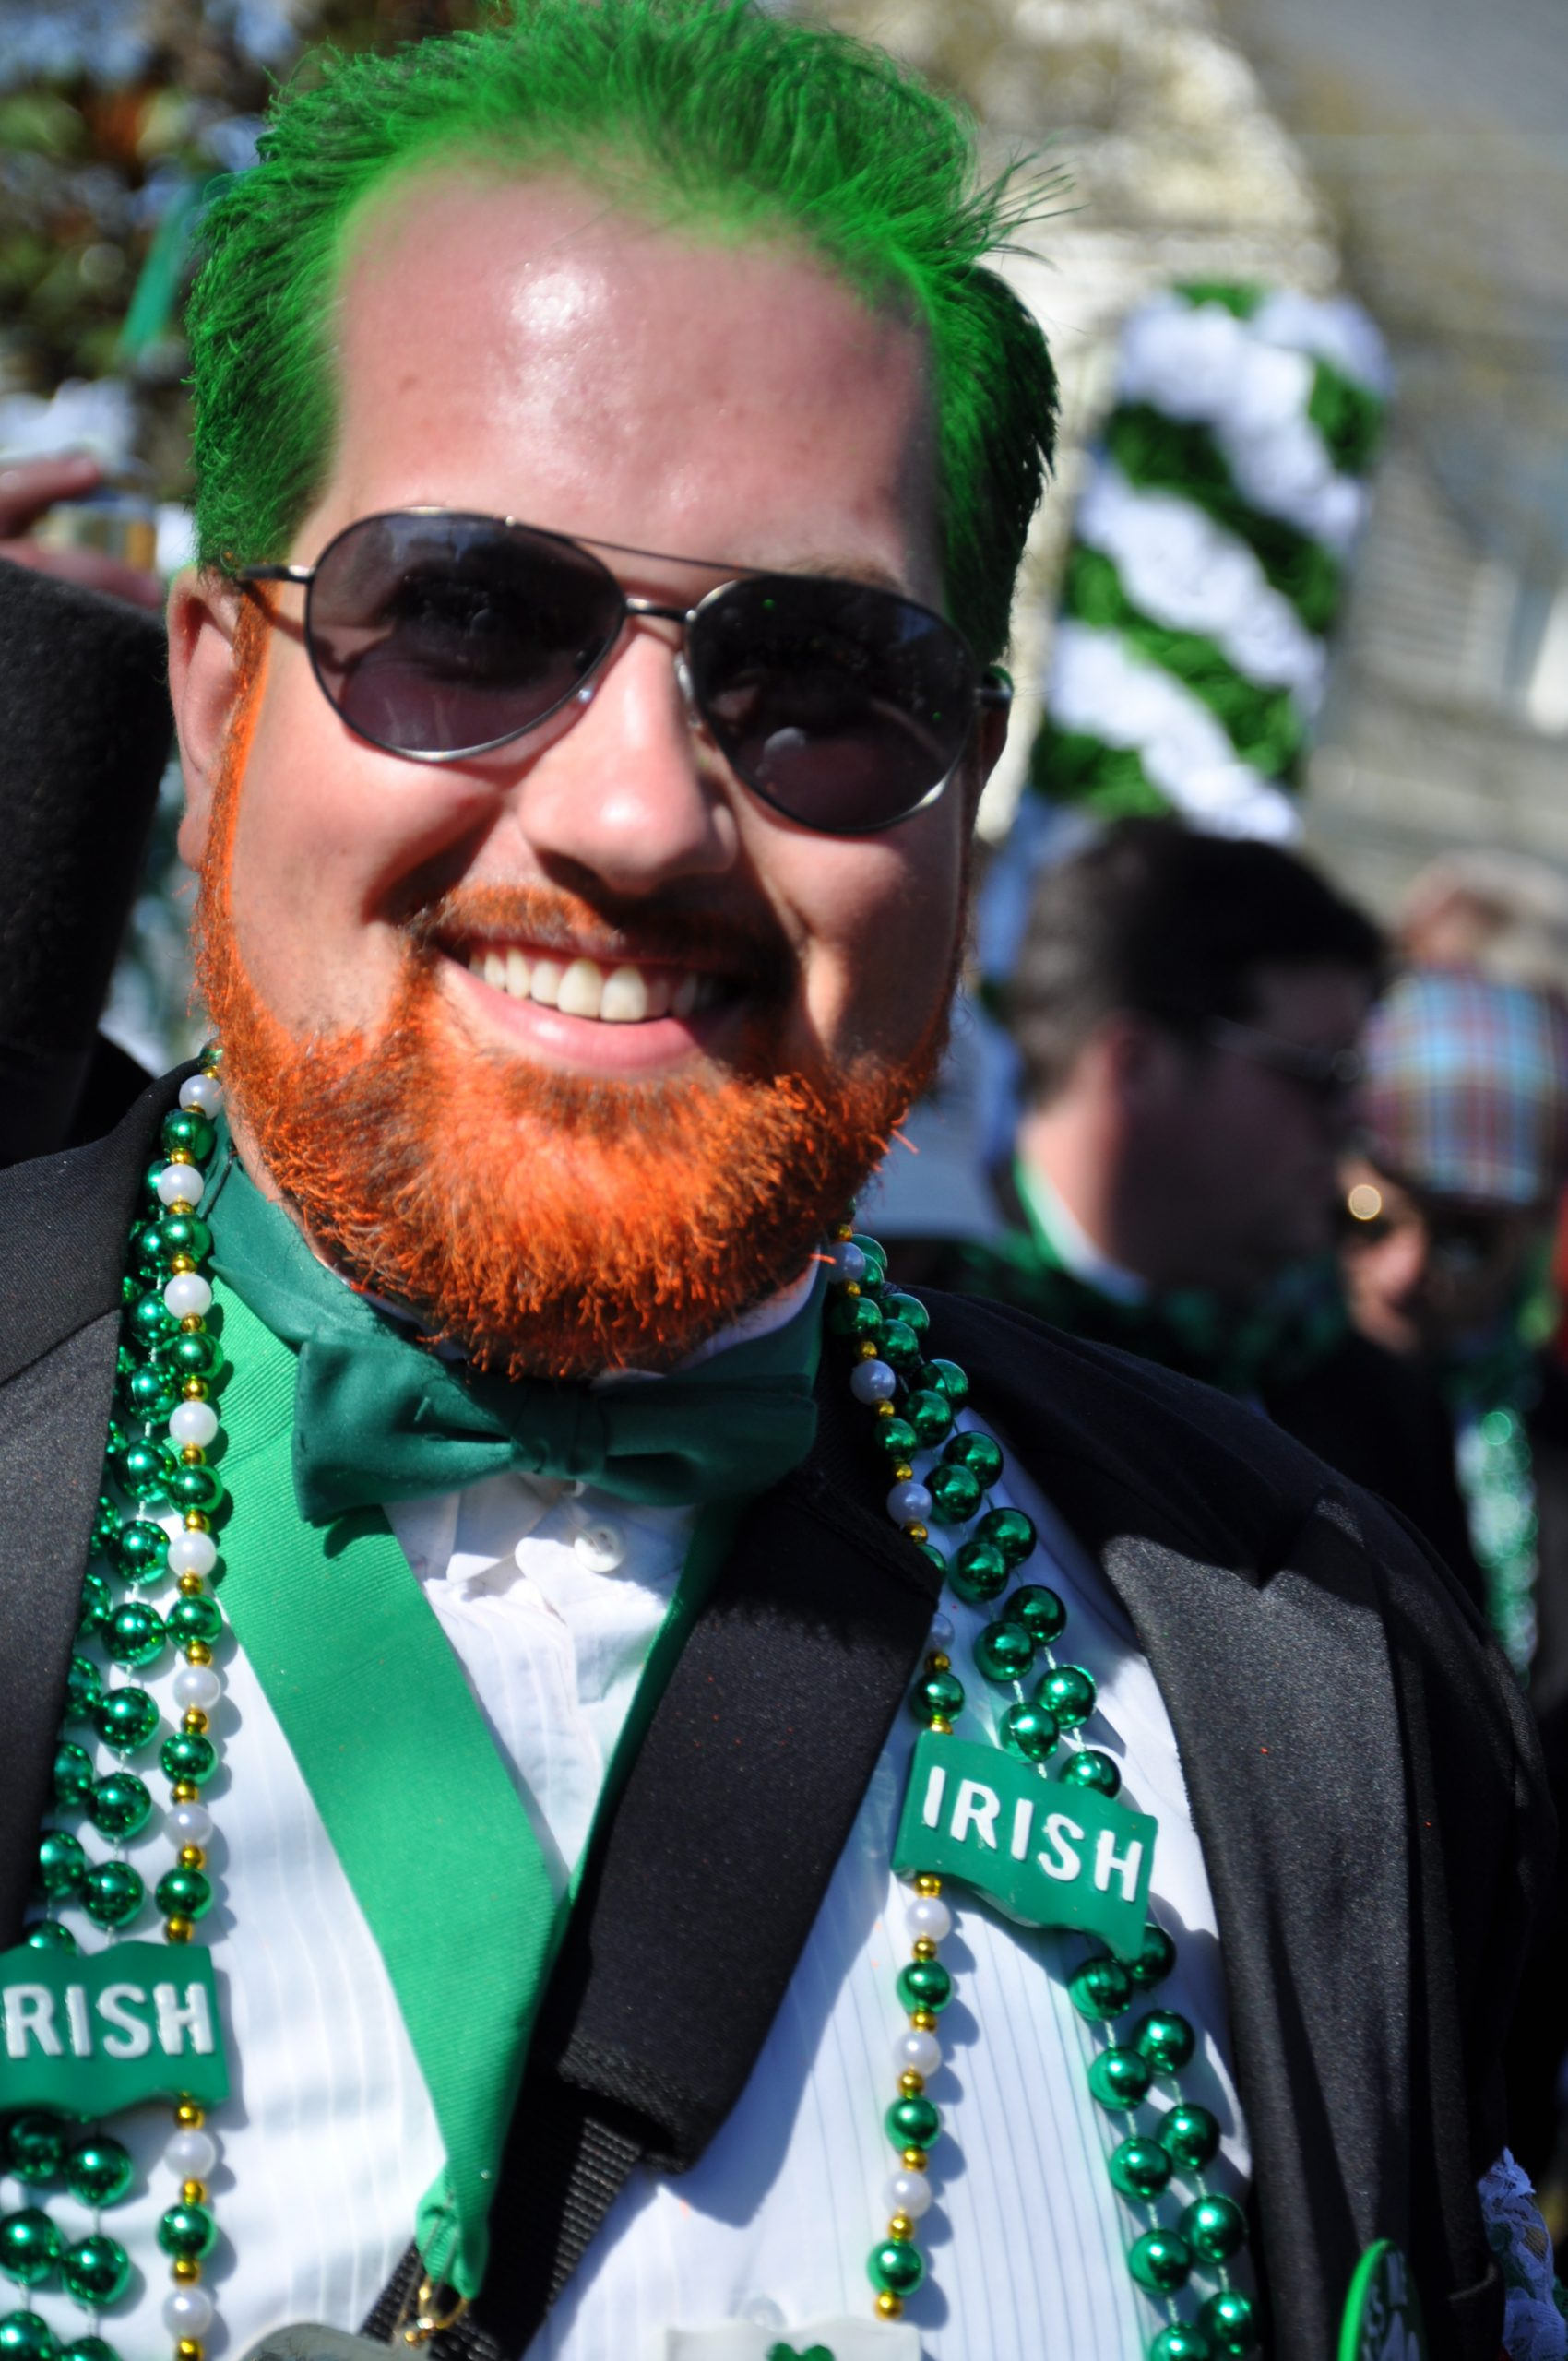 A very happy St. Patrick's Day Reveler. Photo by Sharon Armstrong.